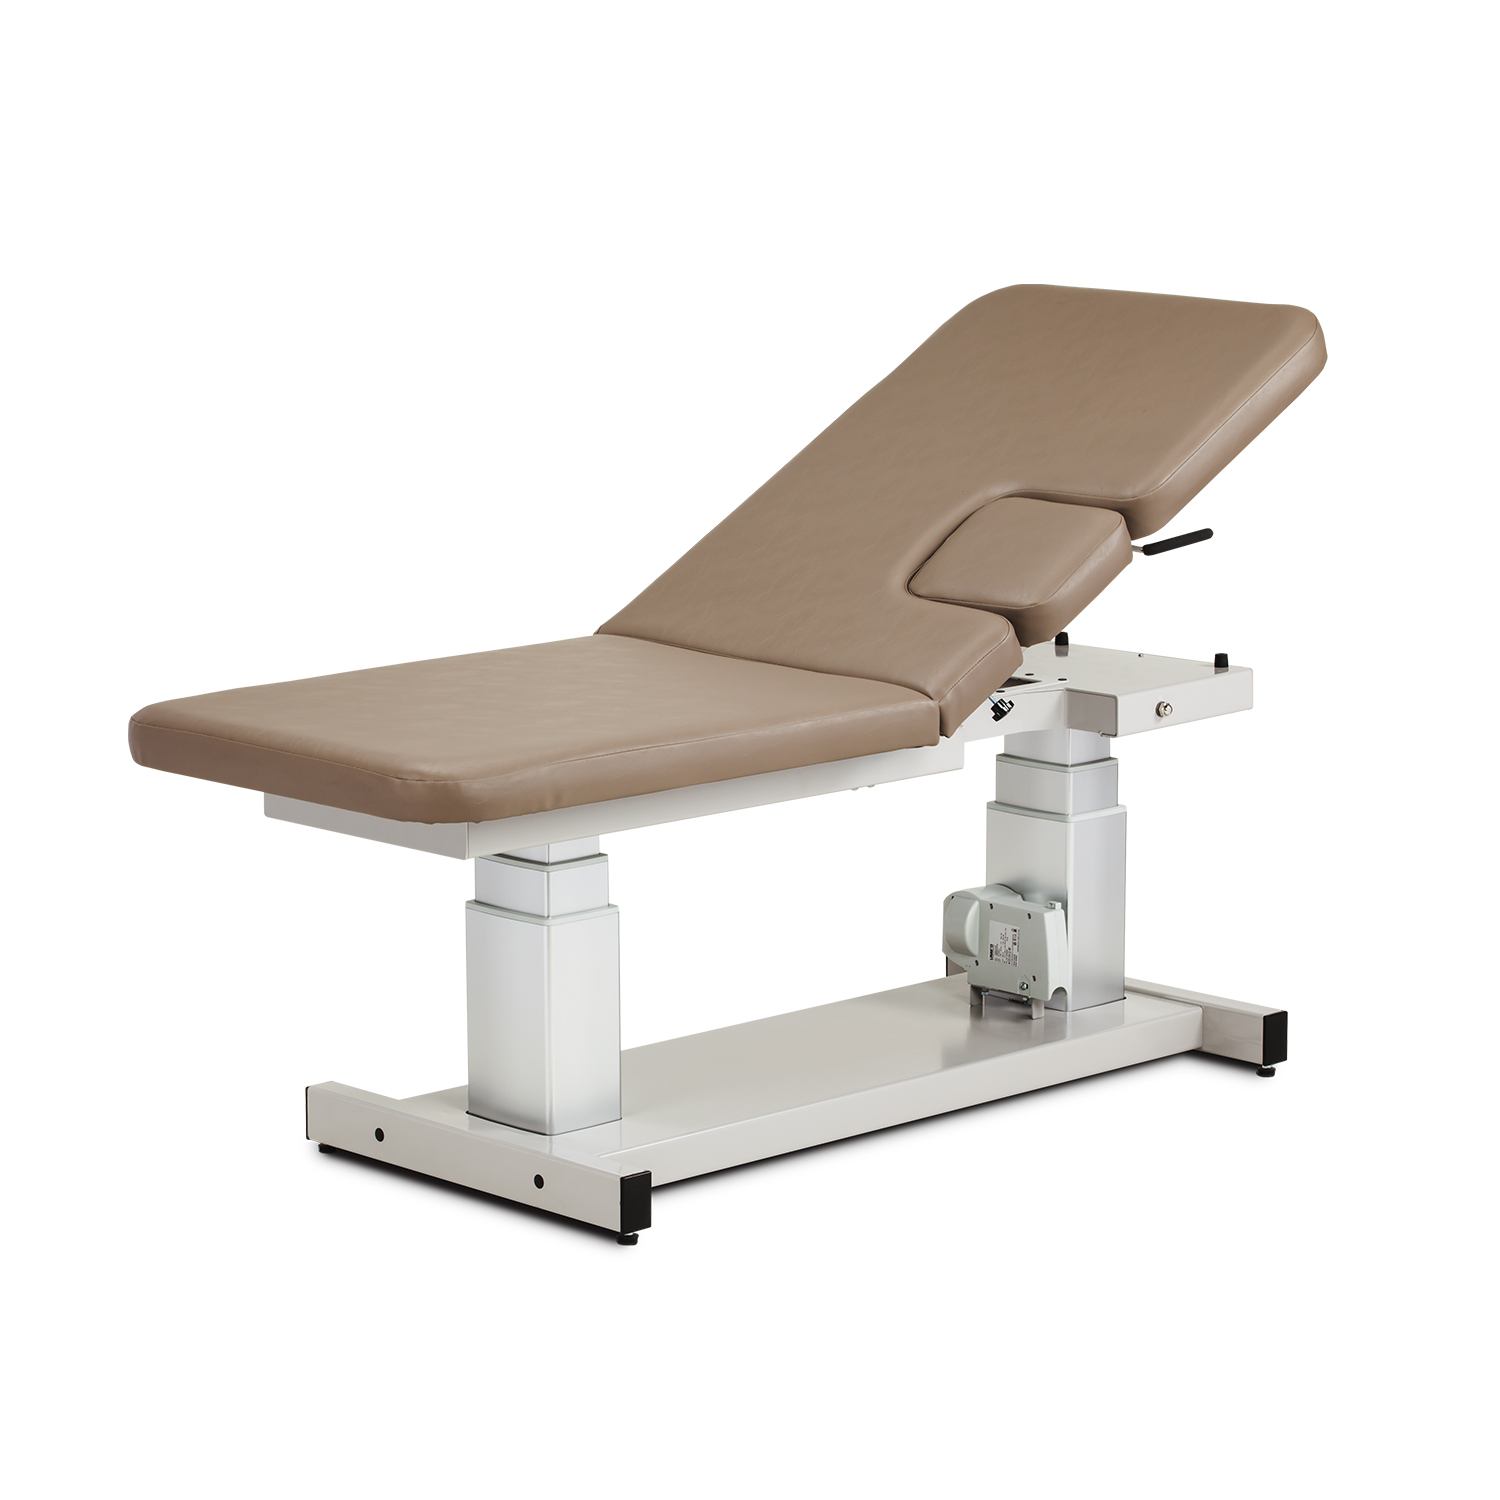 Clinton Imaging Table with Fowler Back - 80072